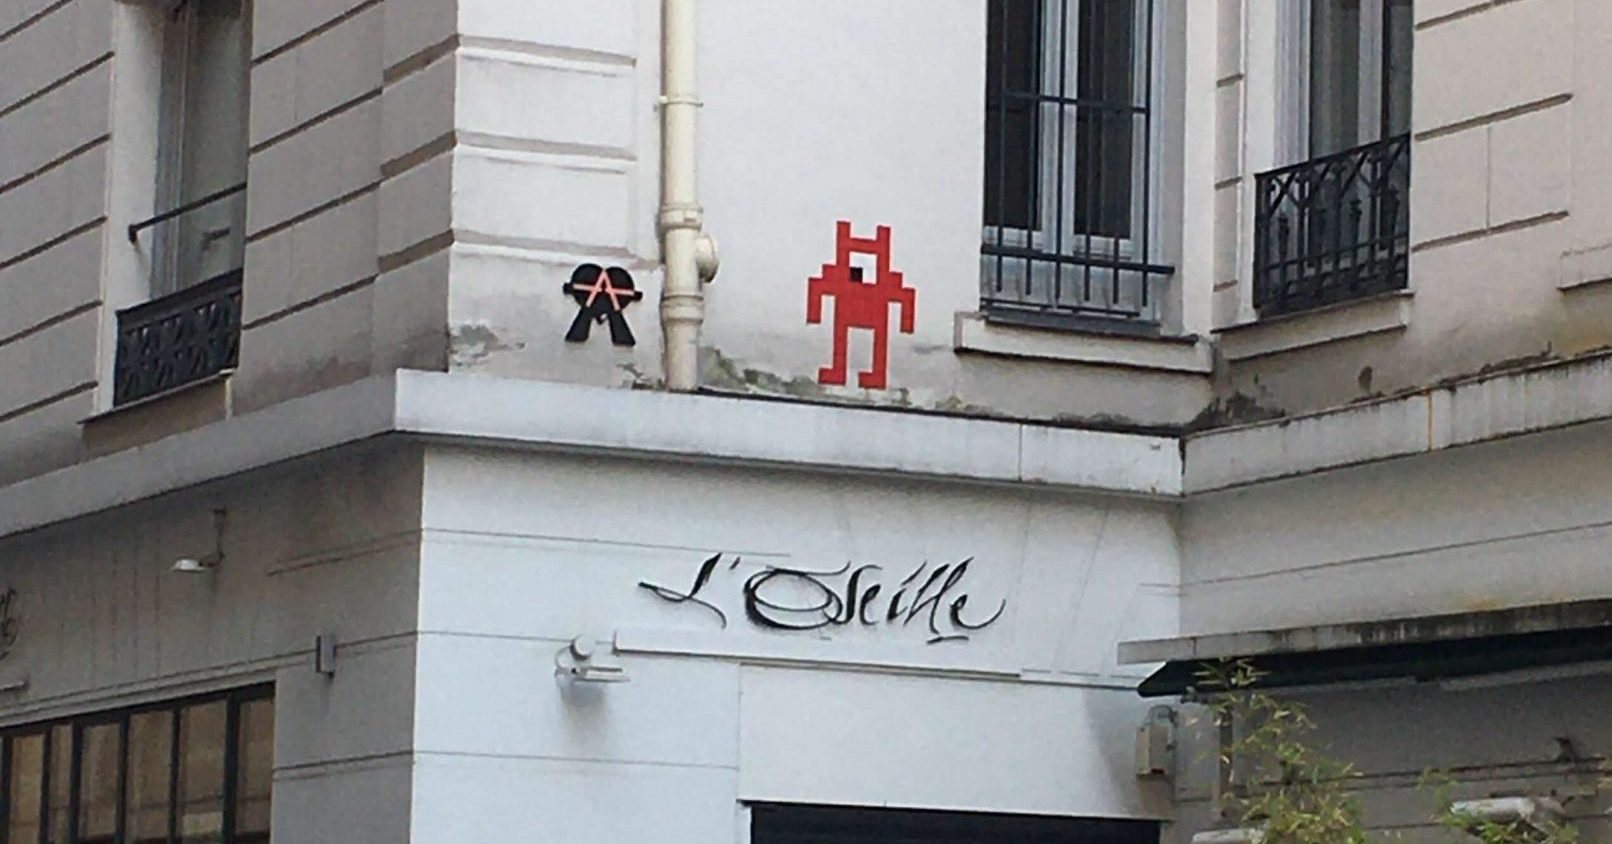 space invader street art in Paris